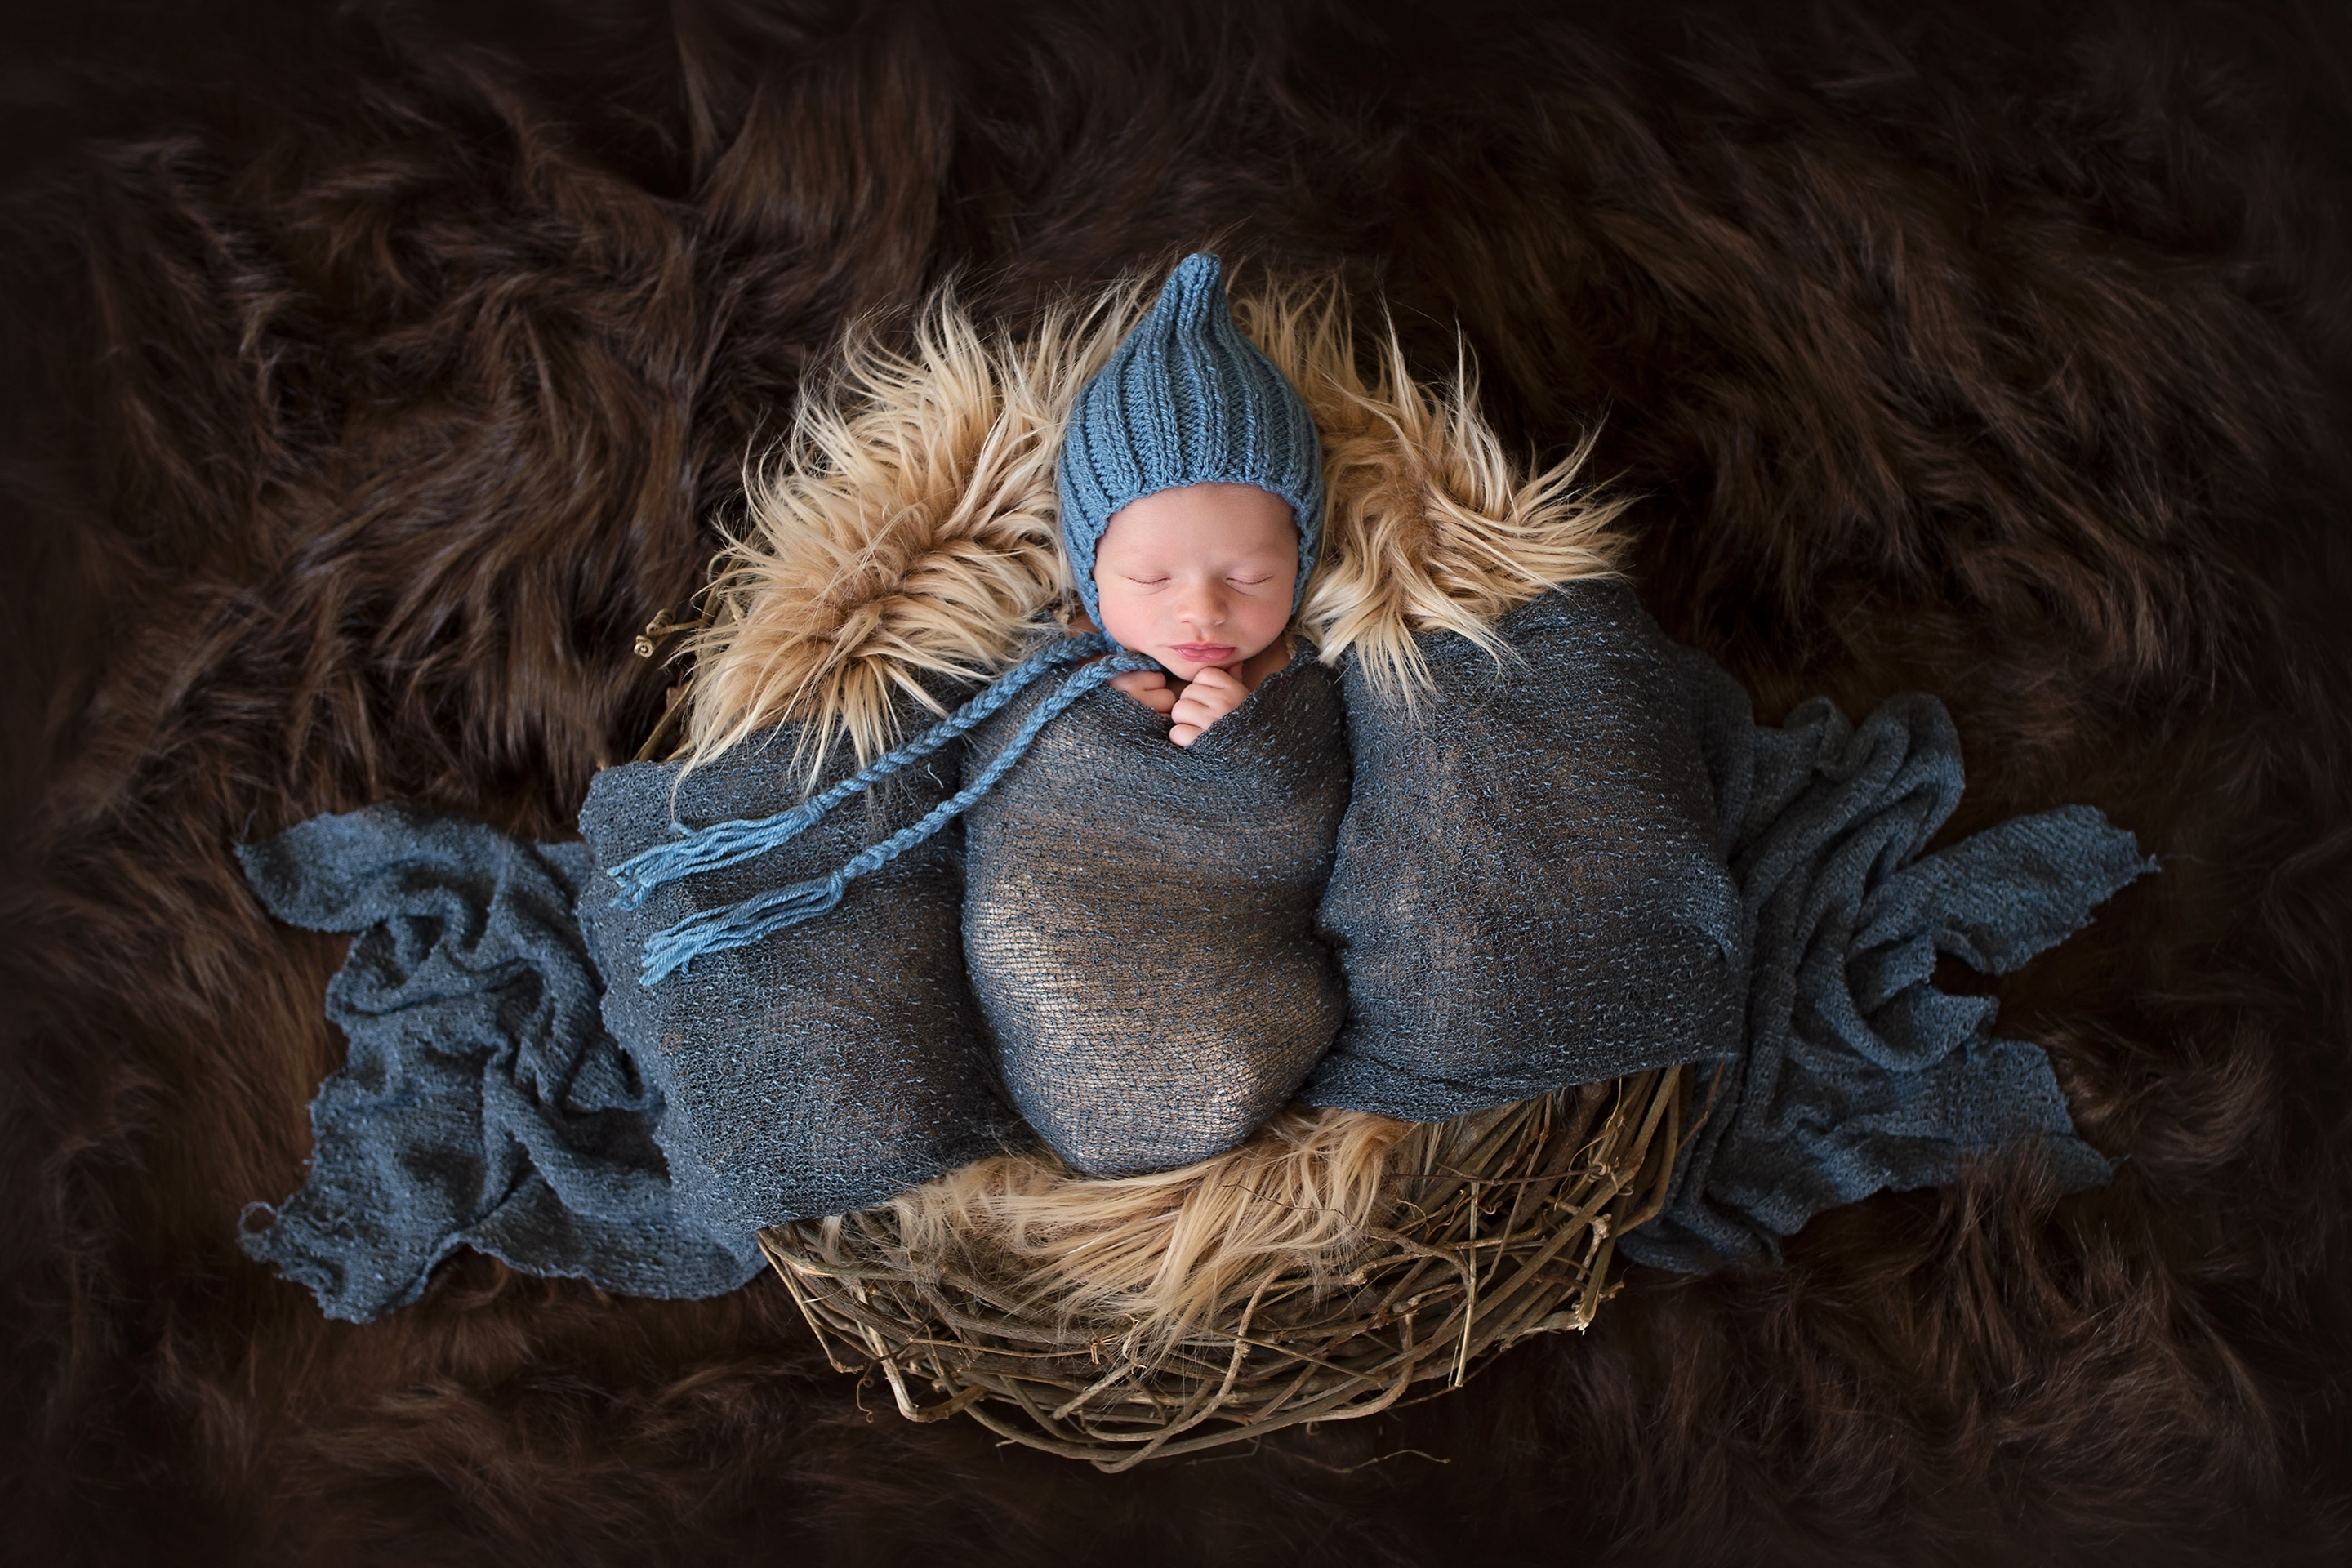 newborn photography baby 11 days old